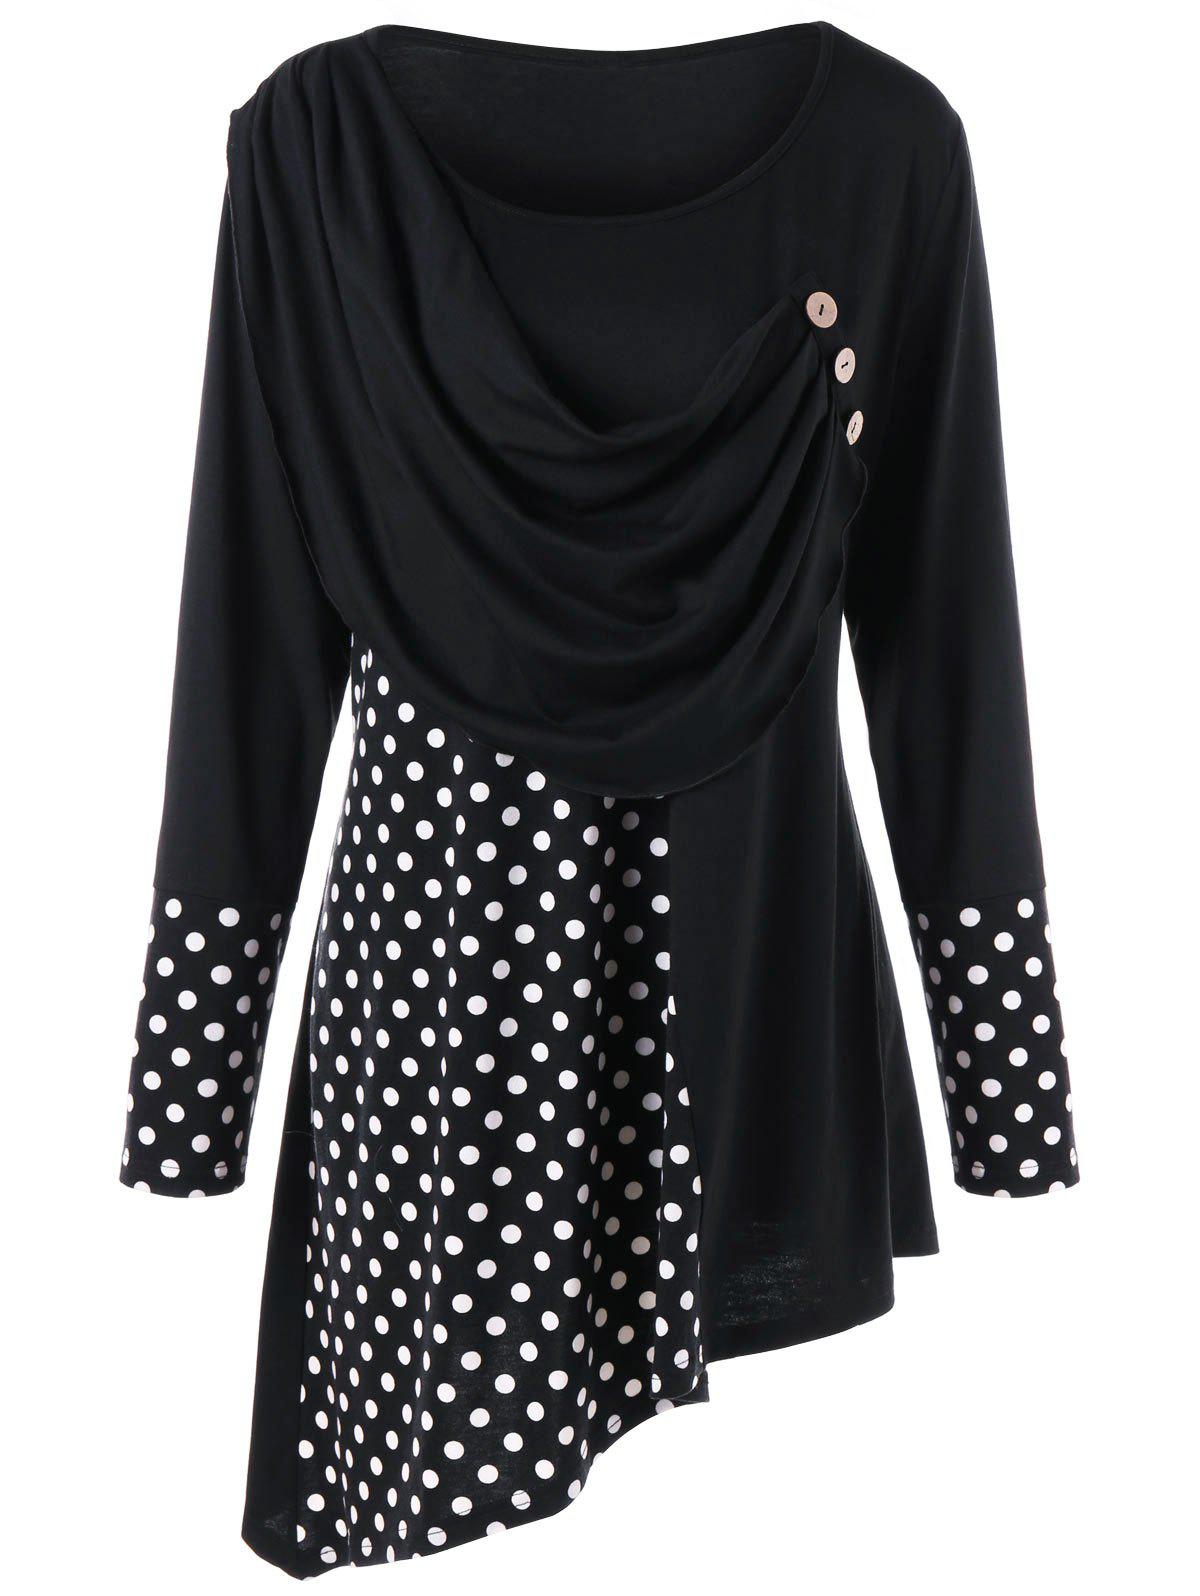 Plus Size Polka Dot Ruched Asymmetrical TopWOMEN<br><br>Size: 4XL; Color: BLACK; Material: Polyester; Shirt Length: Long; Sleeve Length: Full; Collar: Scoop Neck; Style: Casual; Season: Fall,Spring; Embellishment: Button; Pattern Type: Polka Dot; Weight: 0.3500kg; Package Contents: 1 x Top;